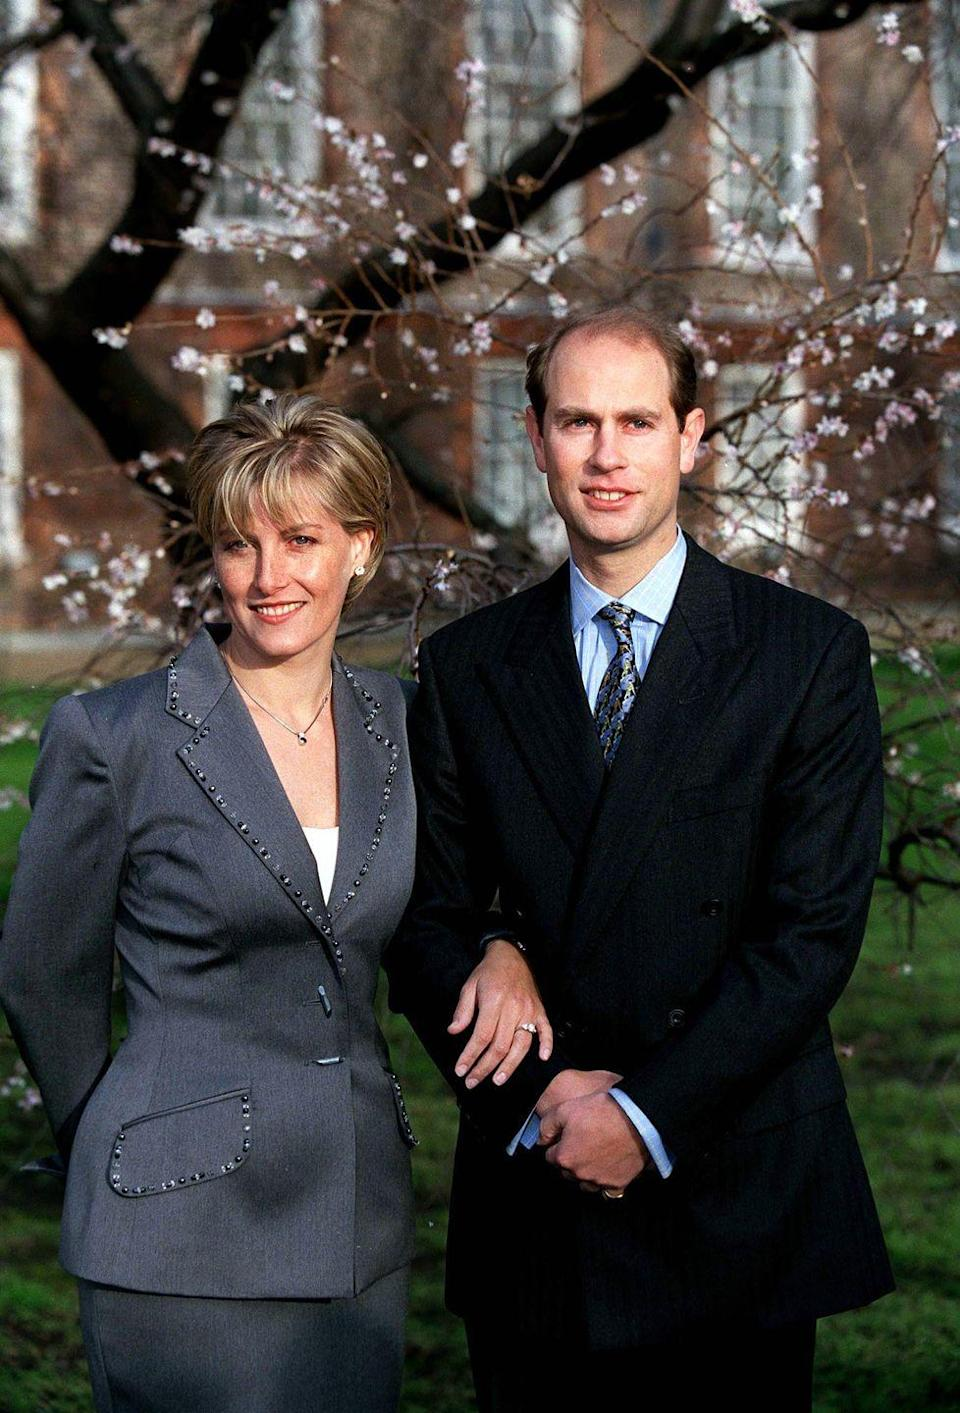 <p>Queen Elizabeth's youngest son, Prince Edward, proposed to public relations executive Sophie Rhys-Jones in 1999. The couple announced the news in London on January 1999 and were married later that year at St. George's Chapel. </p>